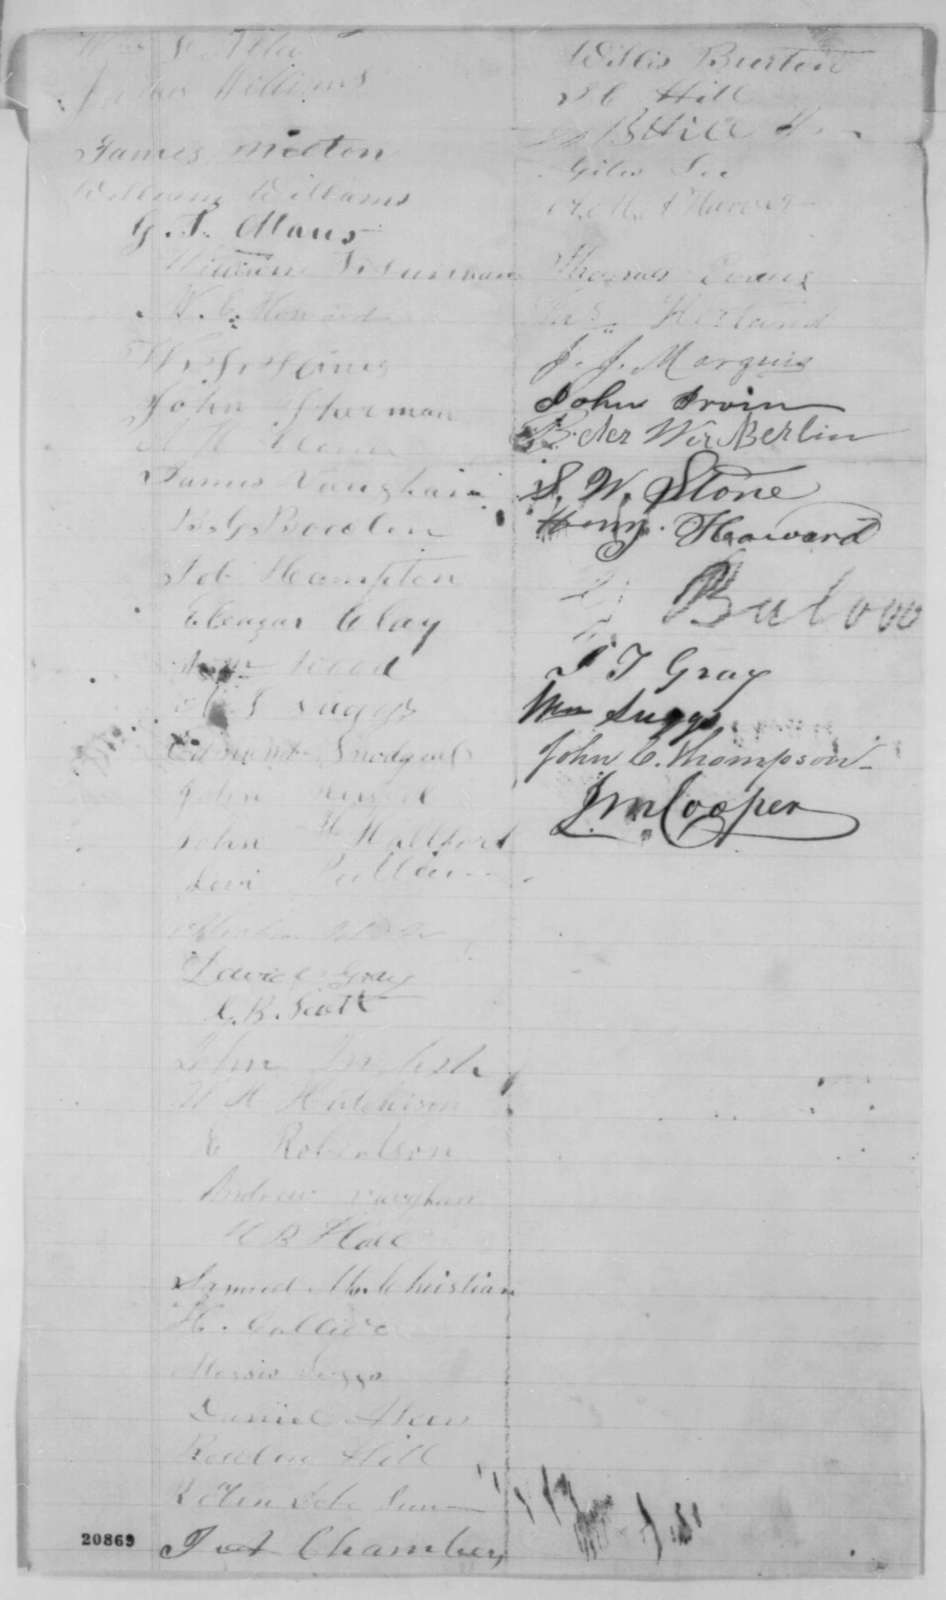 California Missouri Citizens to Abraham Lincoln, Thursday, January 01, 1863  (Petition requesting repeal of General Schofield's General Order No. 3)